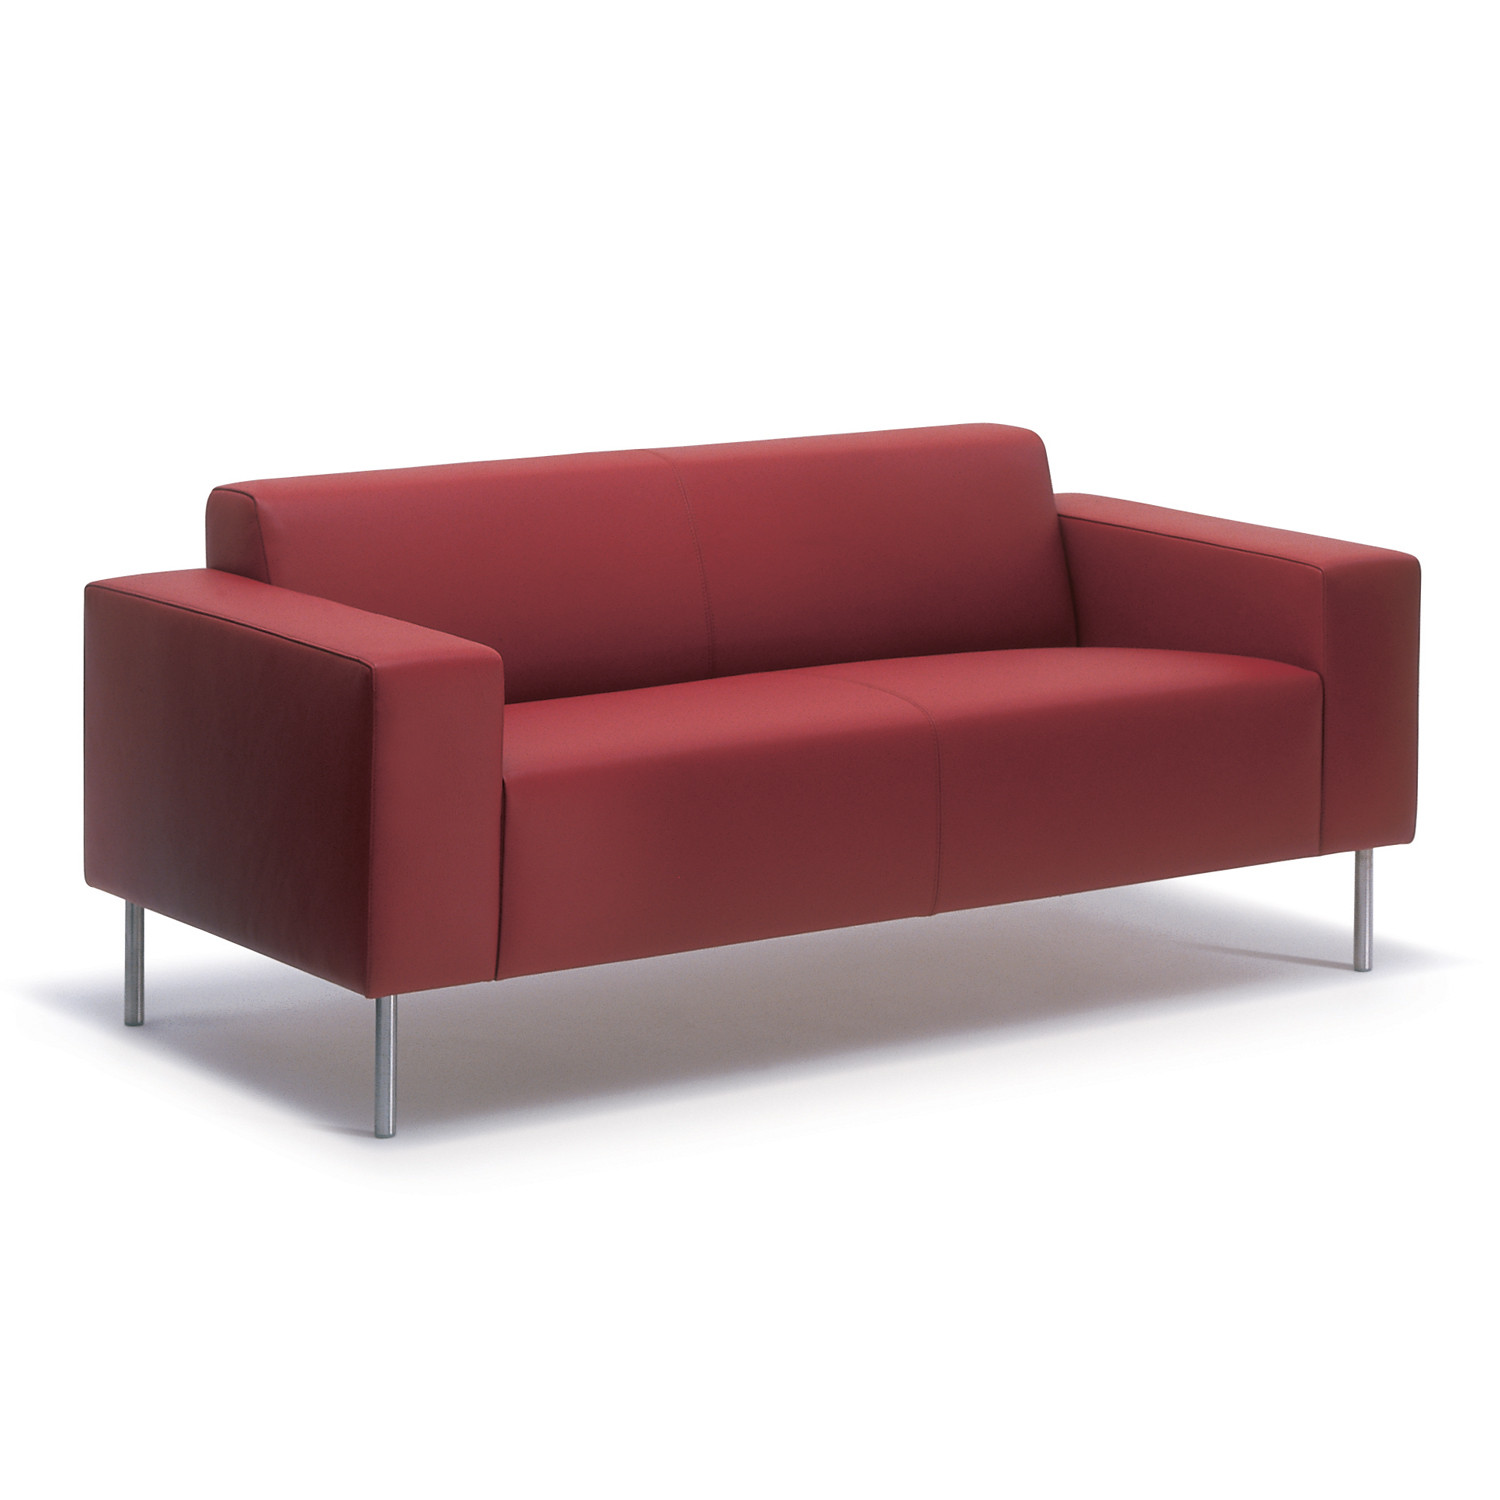 HM18j2 Two-Seat Sofa